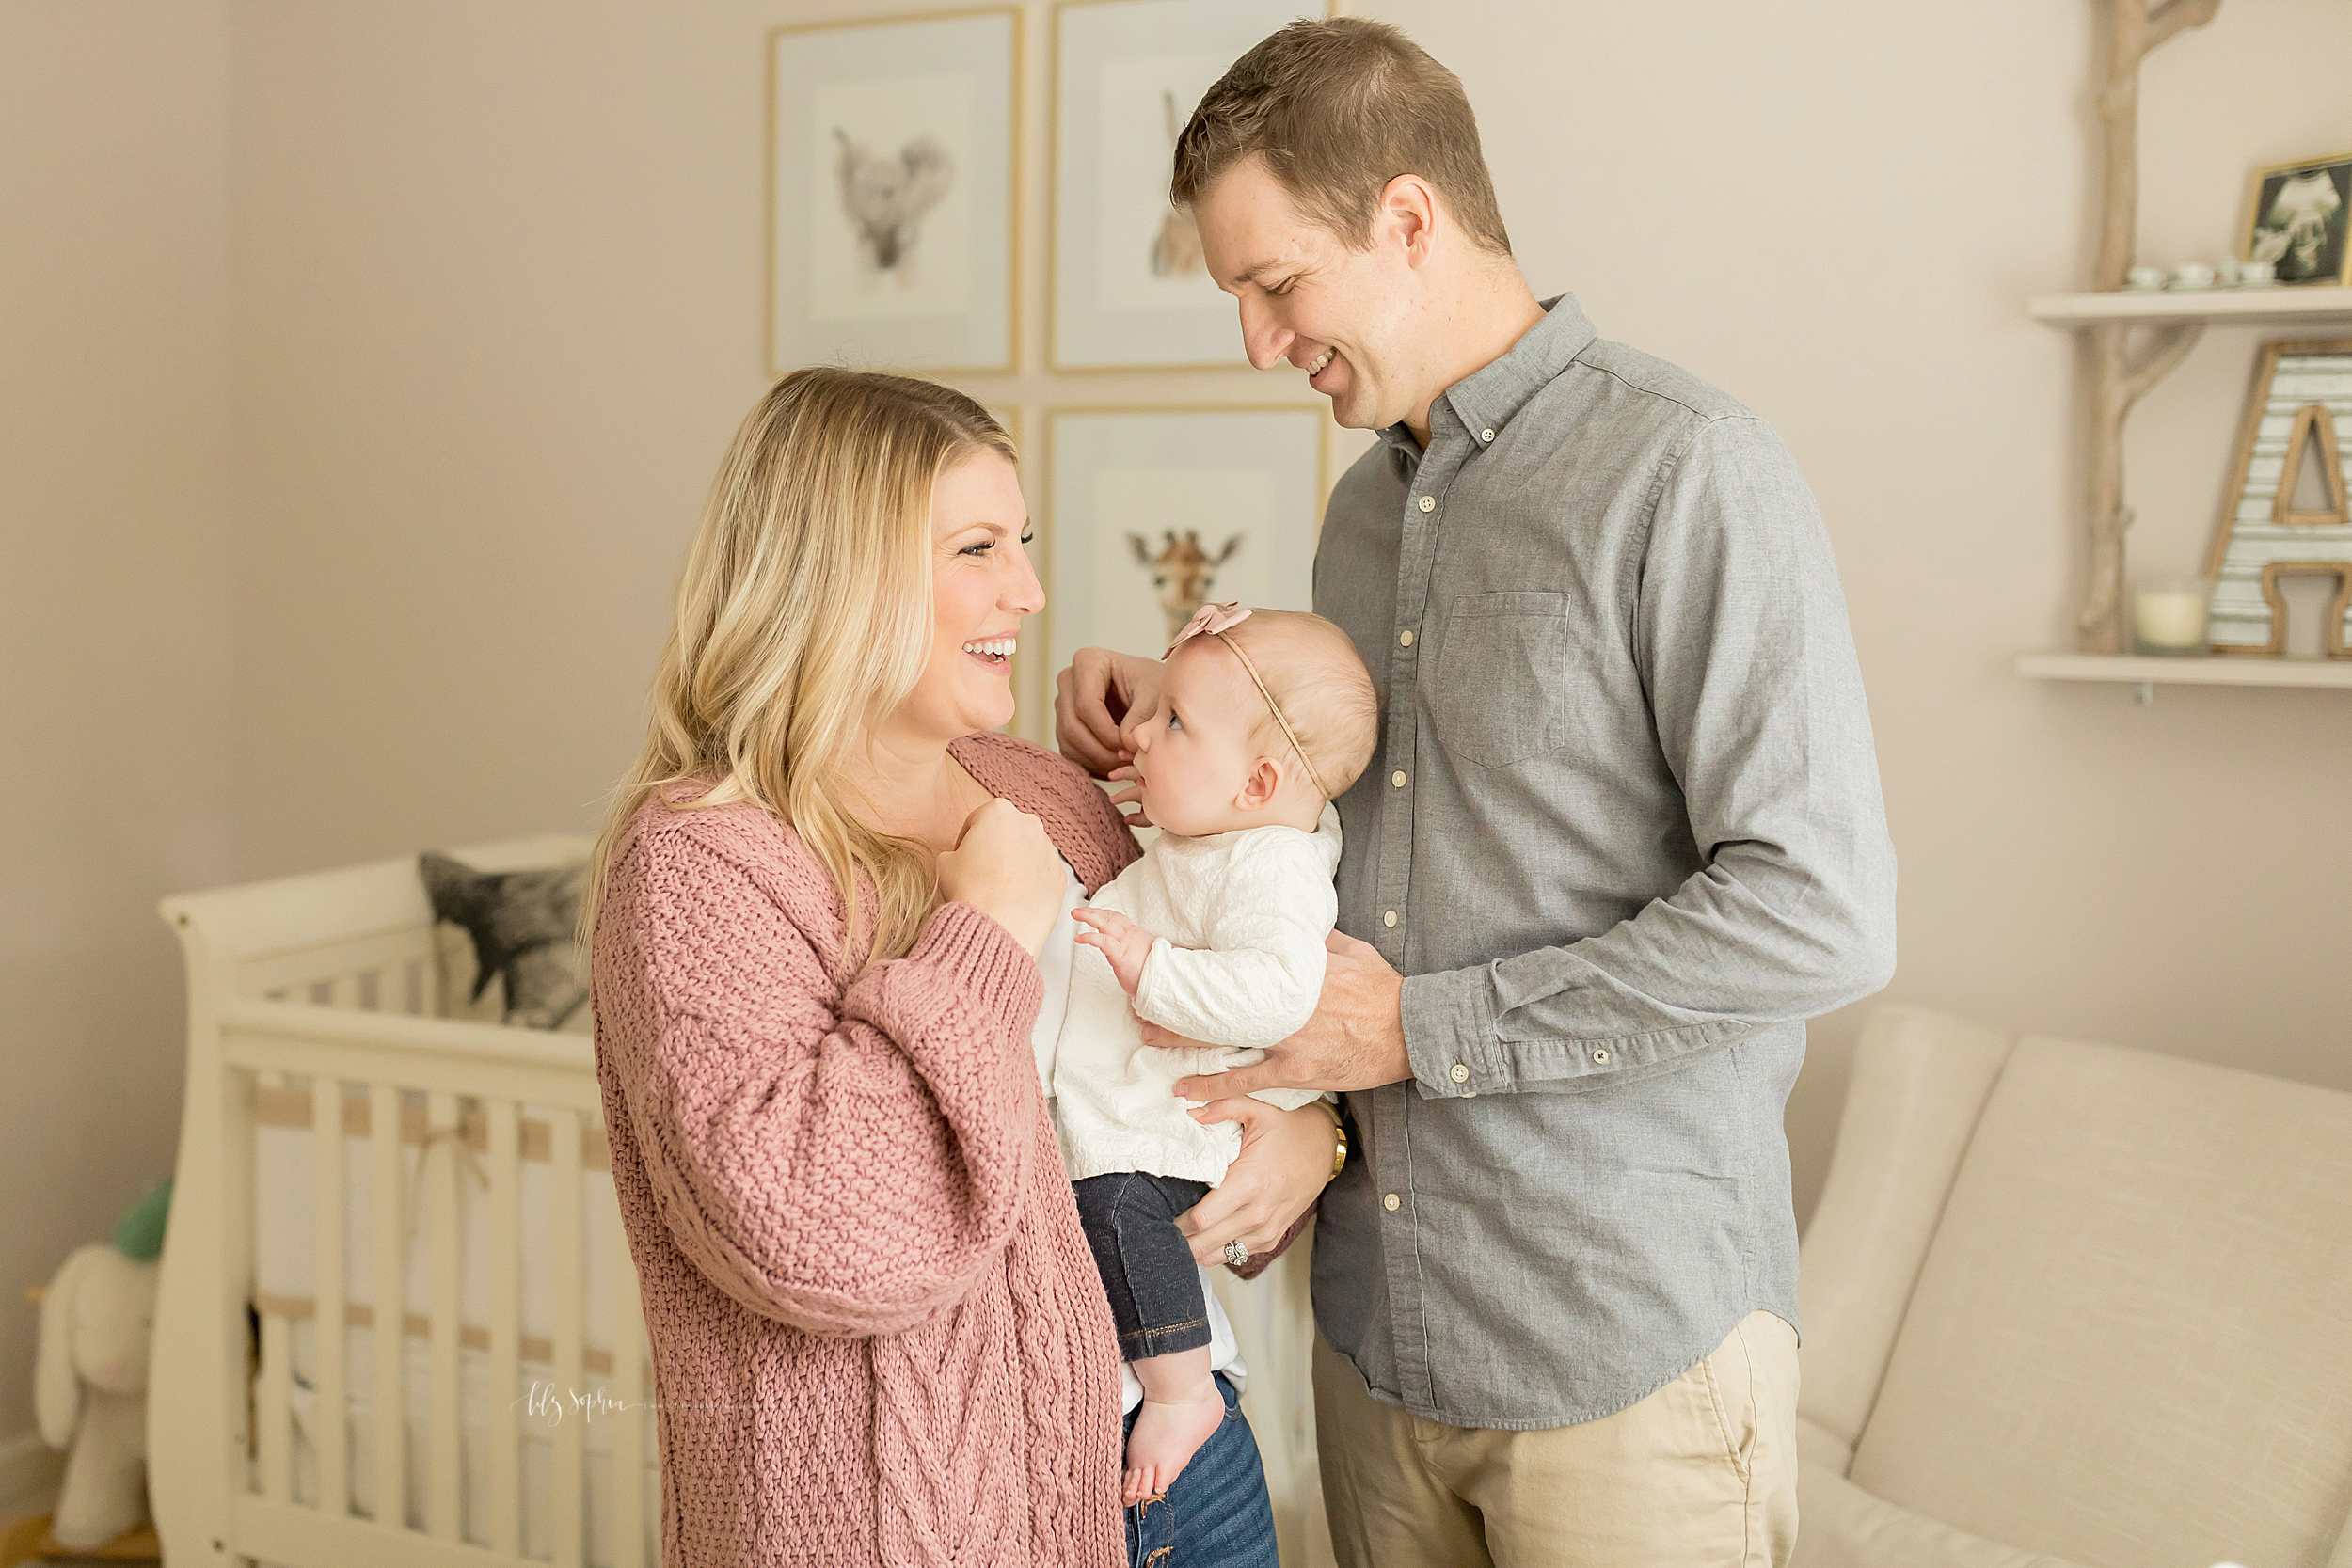 atlanta-midtown-brookhaven-ashford-dunwoody-virginia-highlands-roswell-decatur-lily-sophia-photography-in-home-six-month-milestone-family-lifestyle-session-sandy-springs_0674.jpg